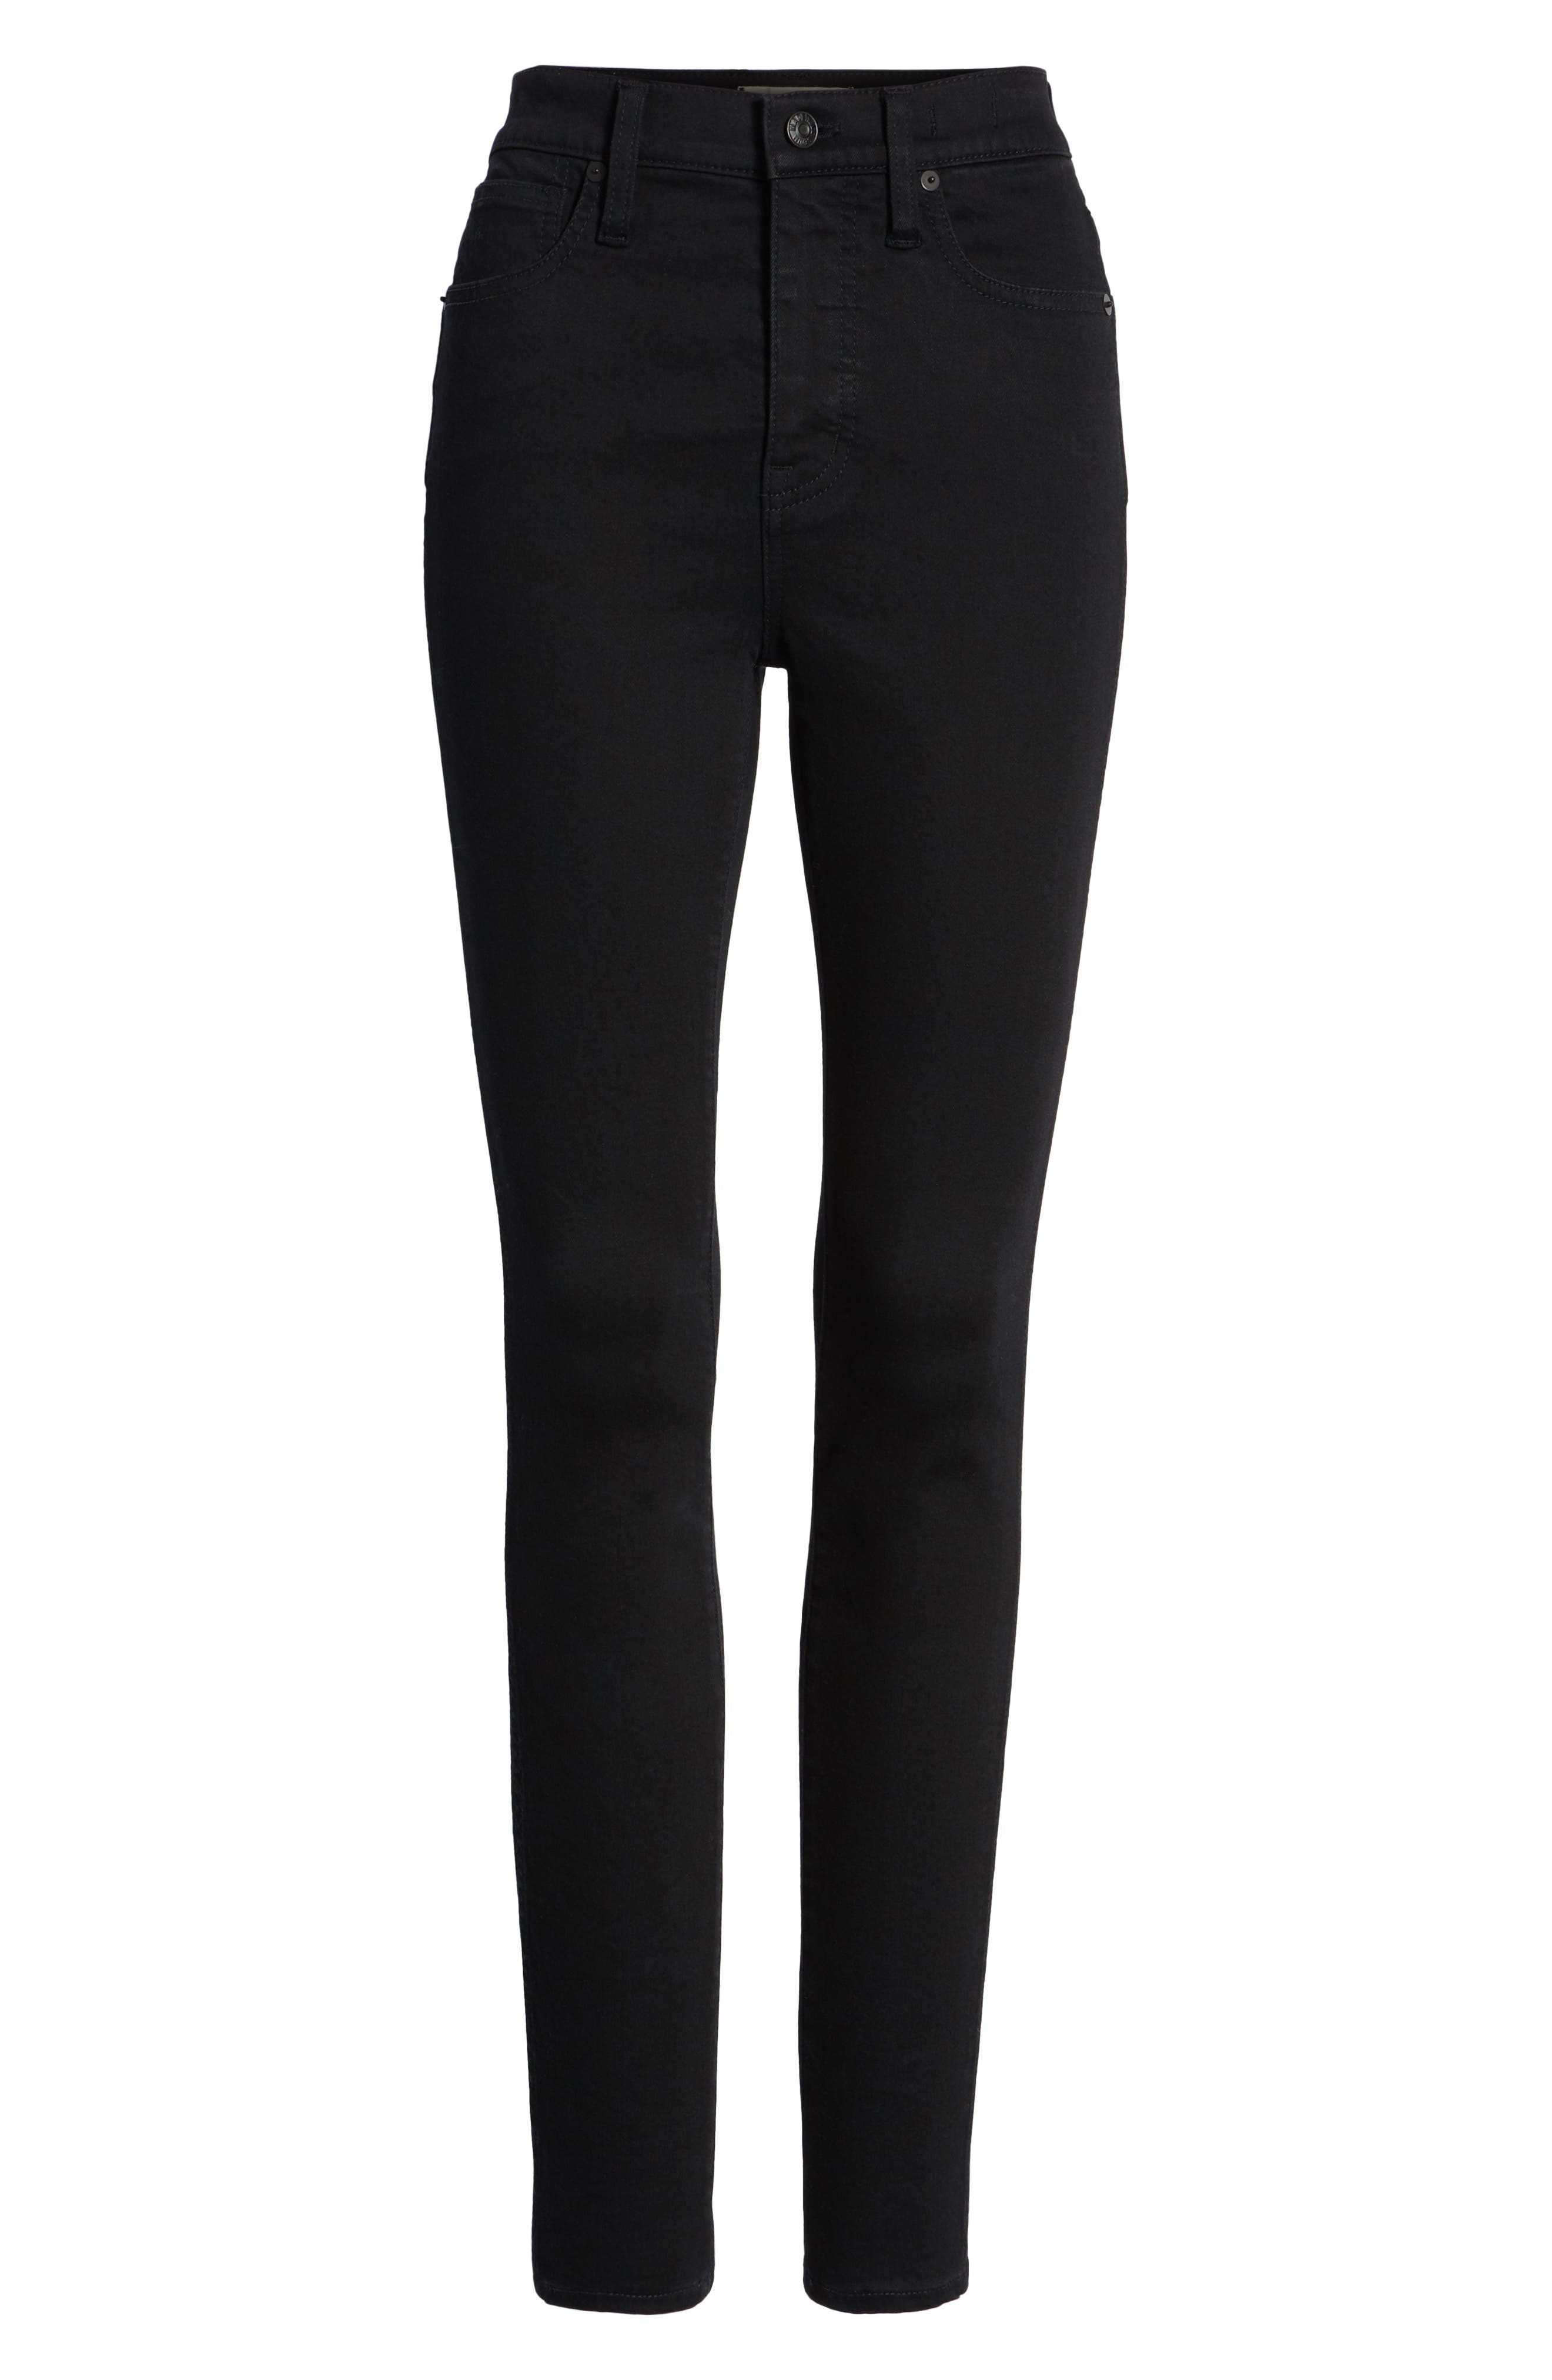 10-Inch High Waist Skinny Jeans,                             Alternate thumbnail 7, color,                             001